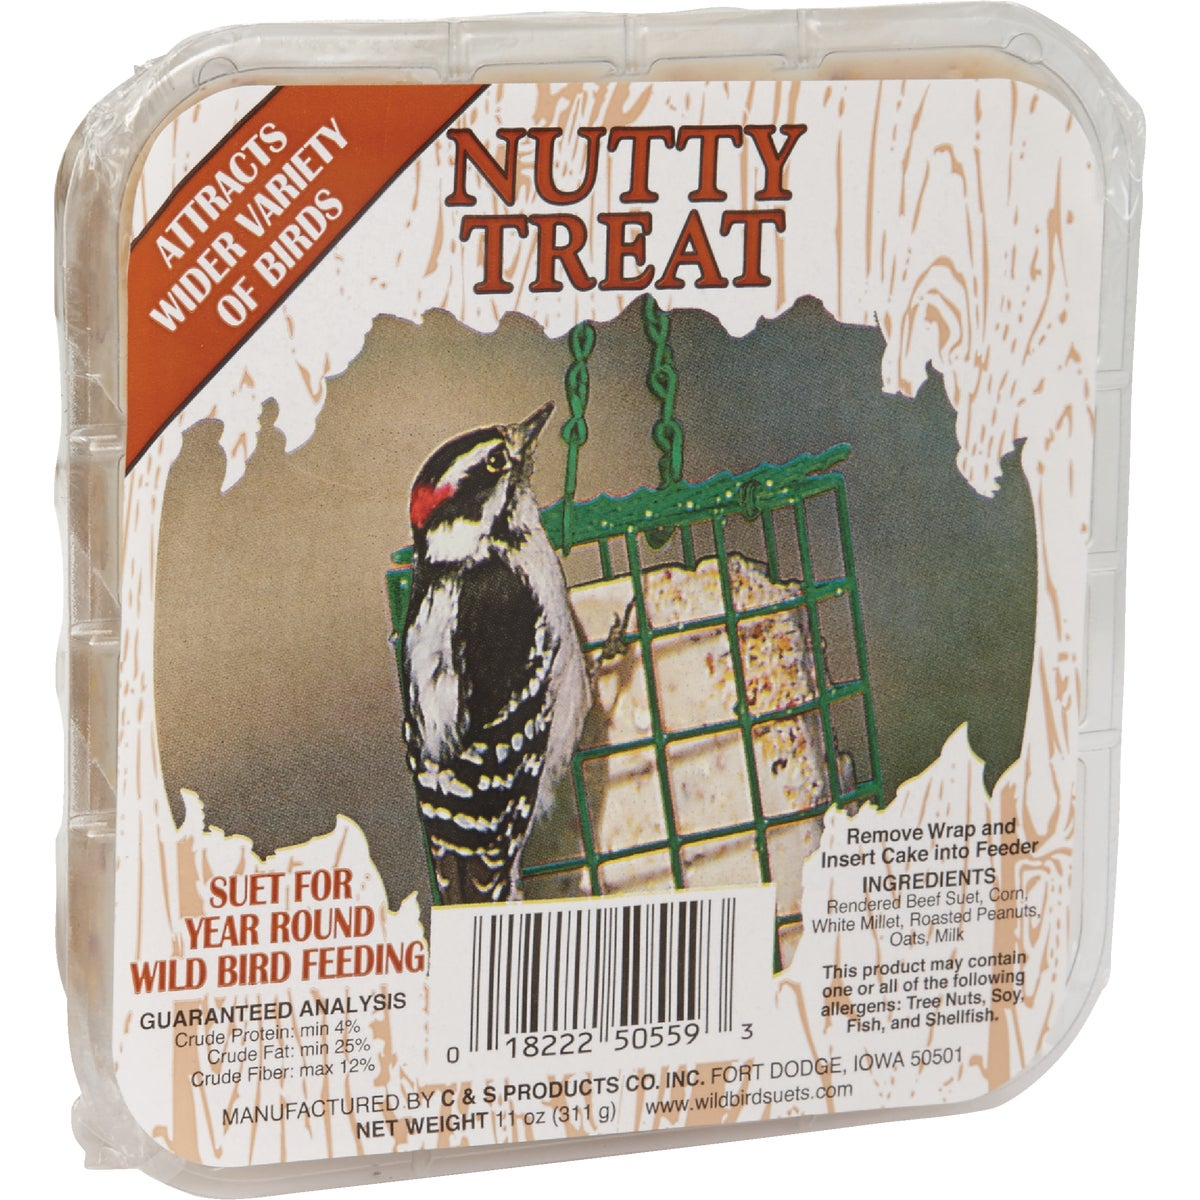 11OZ NUTTY TREAT SUET